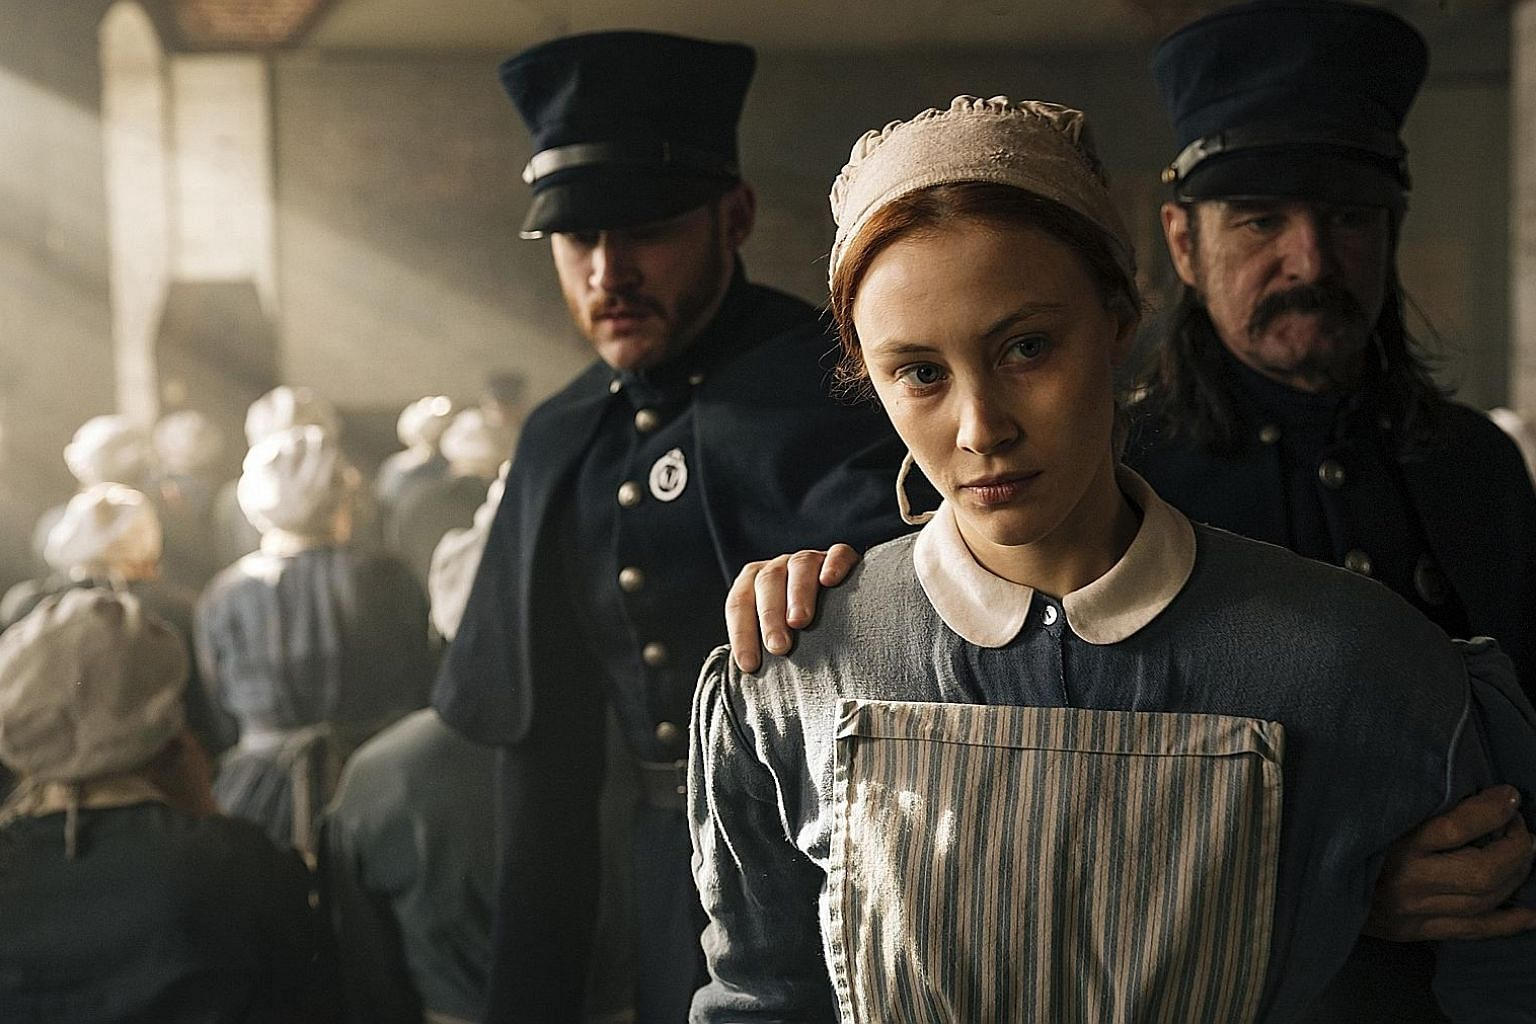 Sarah Gadon is extraordinary as the chameleon-like Grace Marks, who seems at once naive and canny, calculating yet open-hearted, traditional but rebellious.